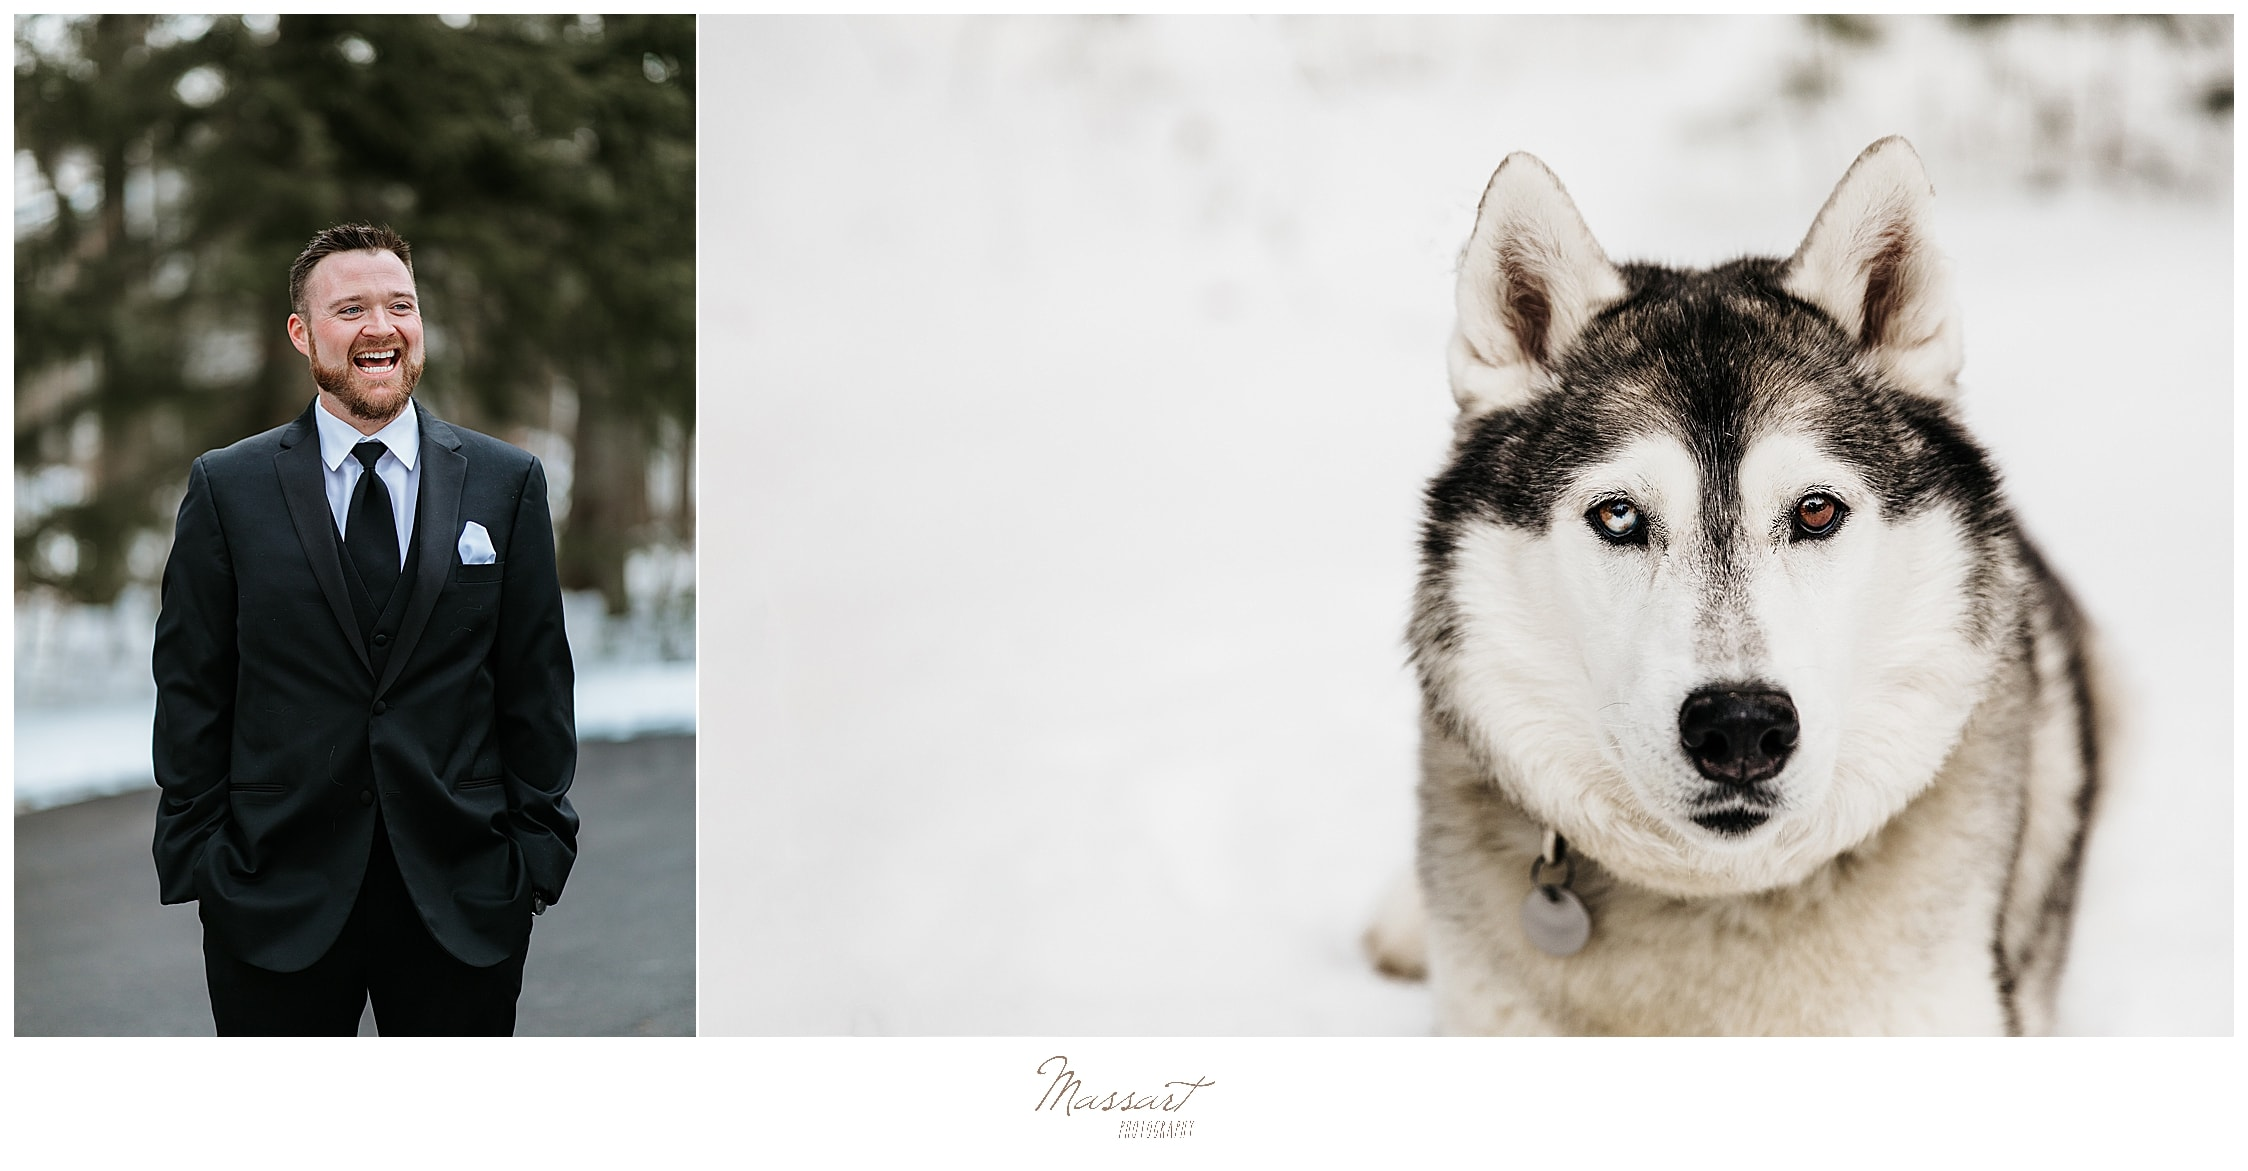 winter wedding photos with dog by MA, CT, RI wedding photographers Massart Photography